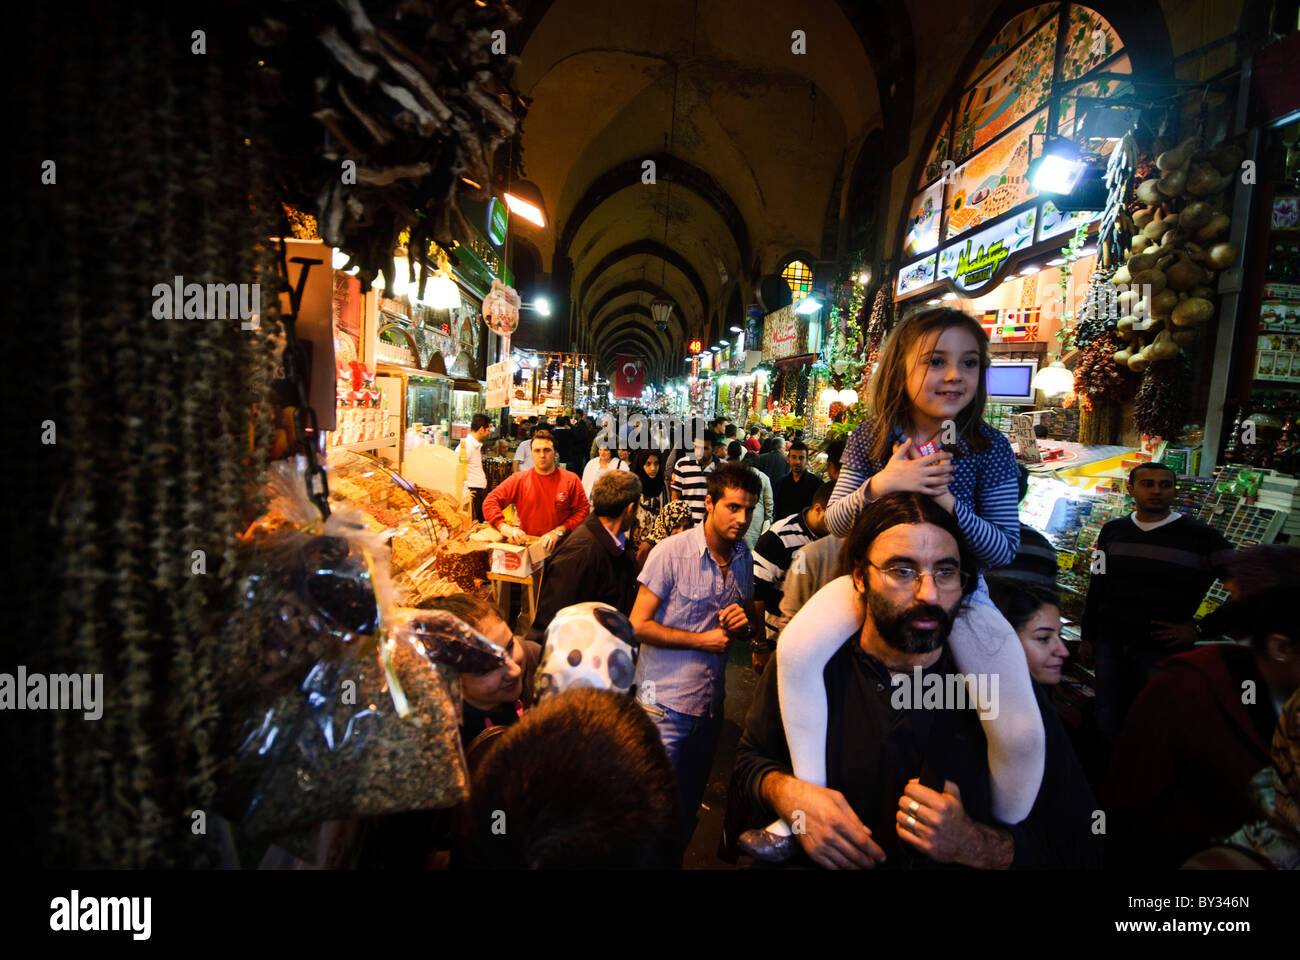 in the Spice Bazaar (also known as the Egyption Bazaar) in Istanbul, Turkey. - Stock Image